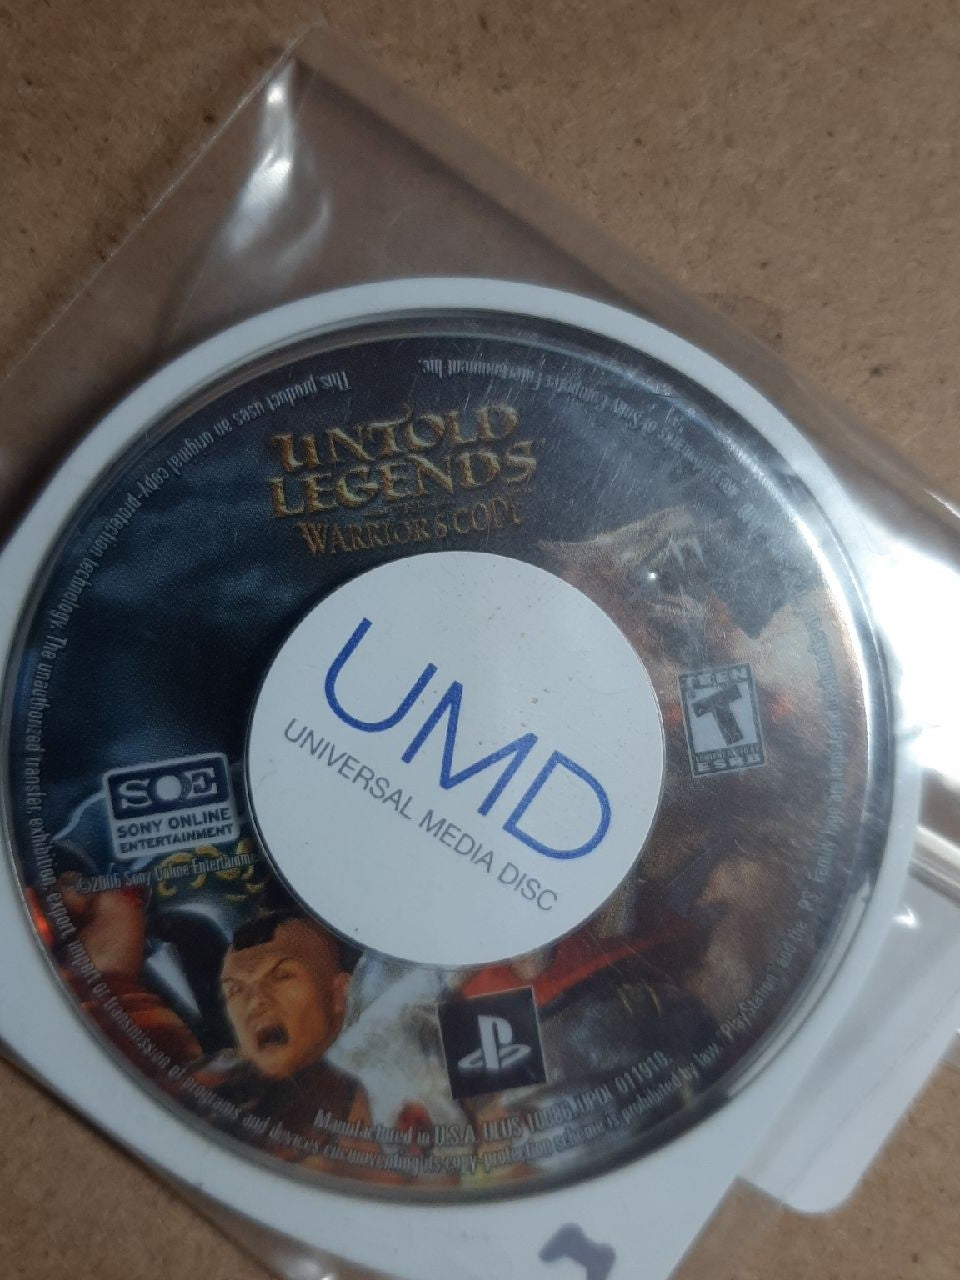 PSP game untold legends